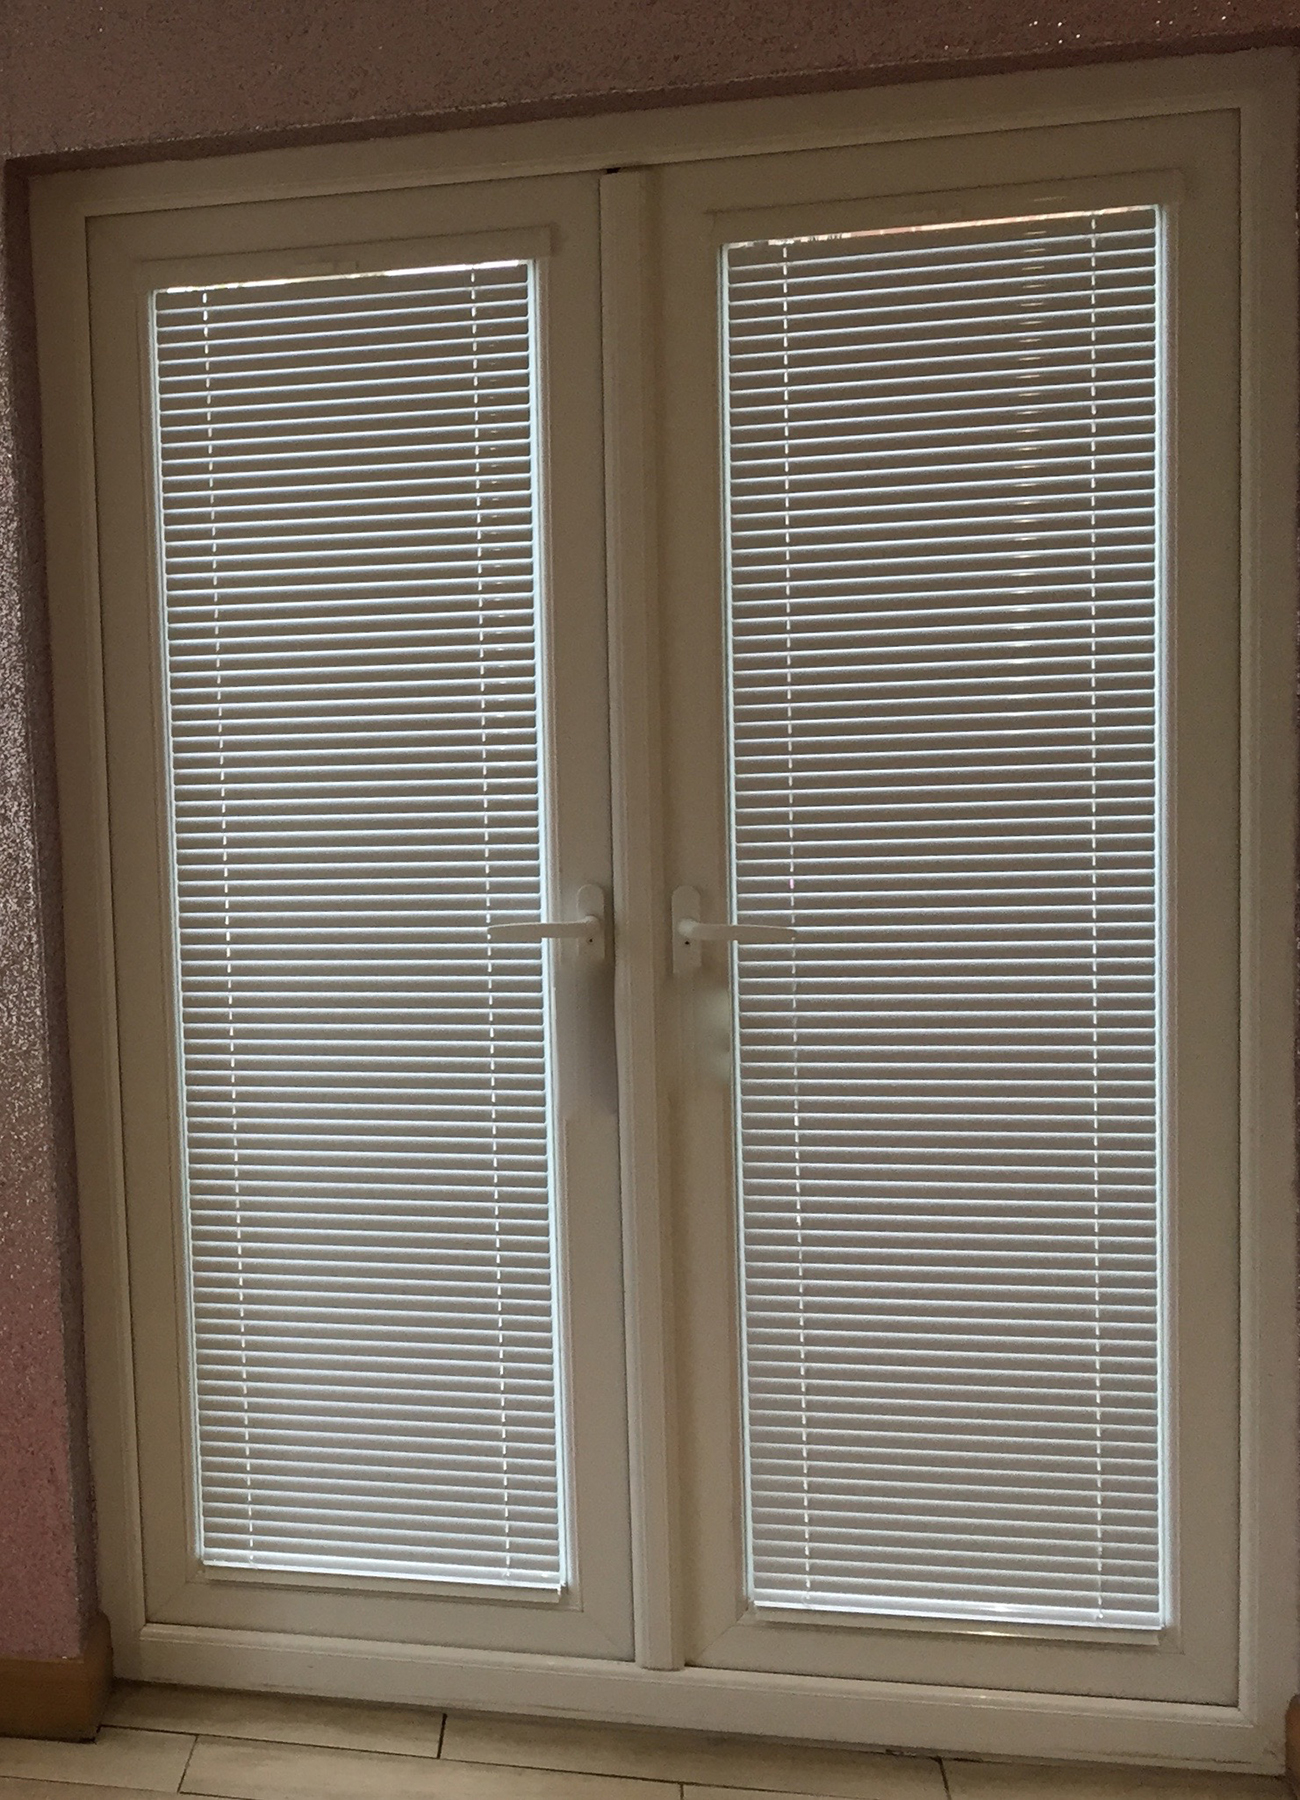 Abacus Blinds Manufacture Intu Venetian Pleated Blinds